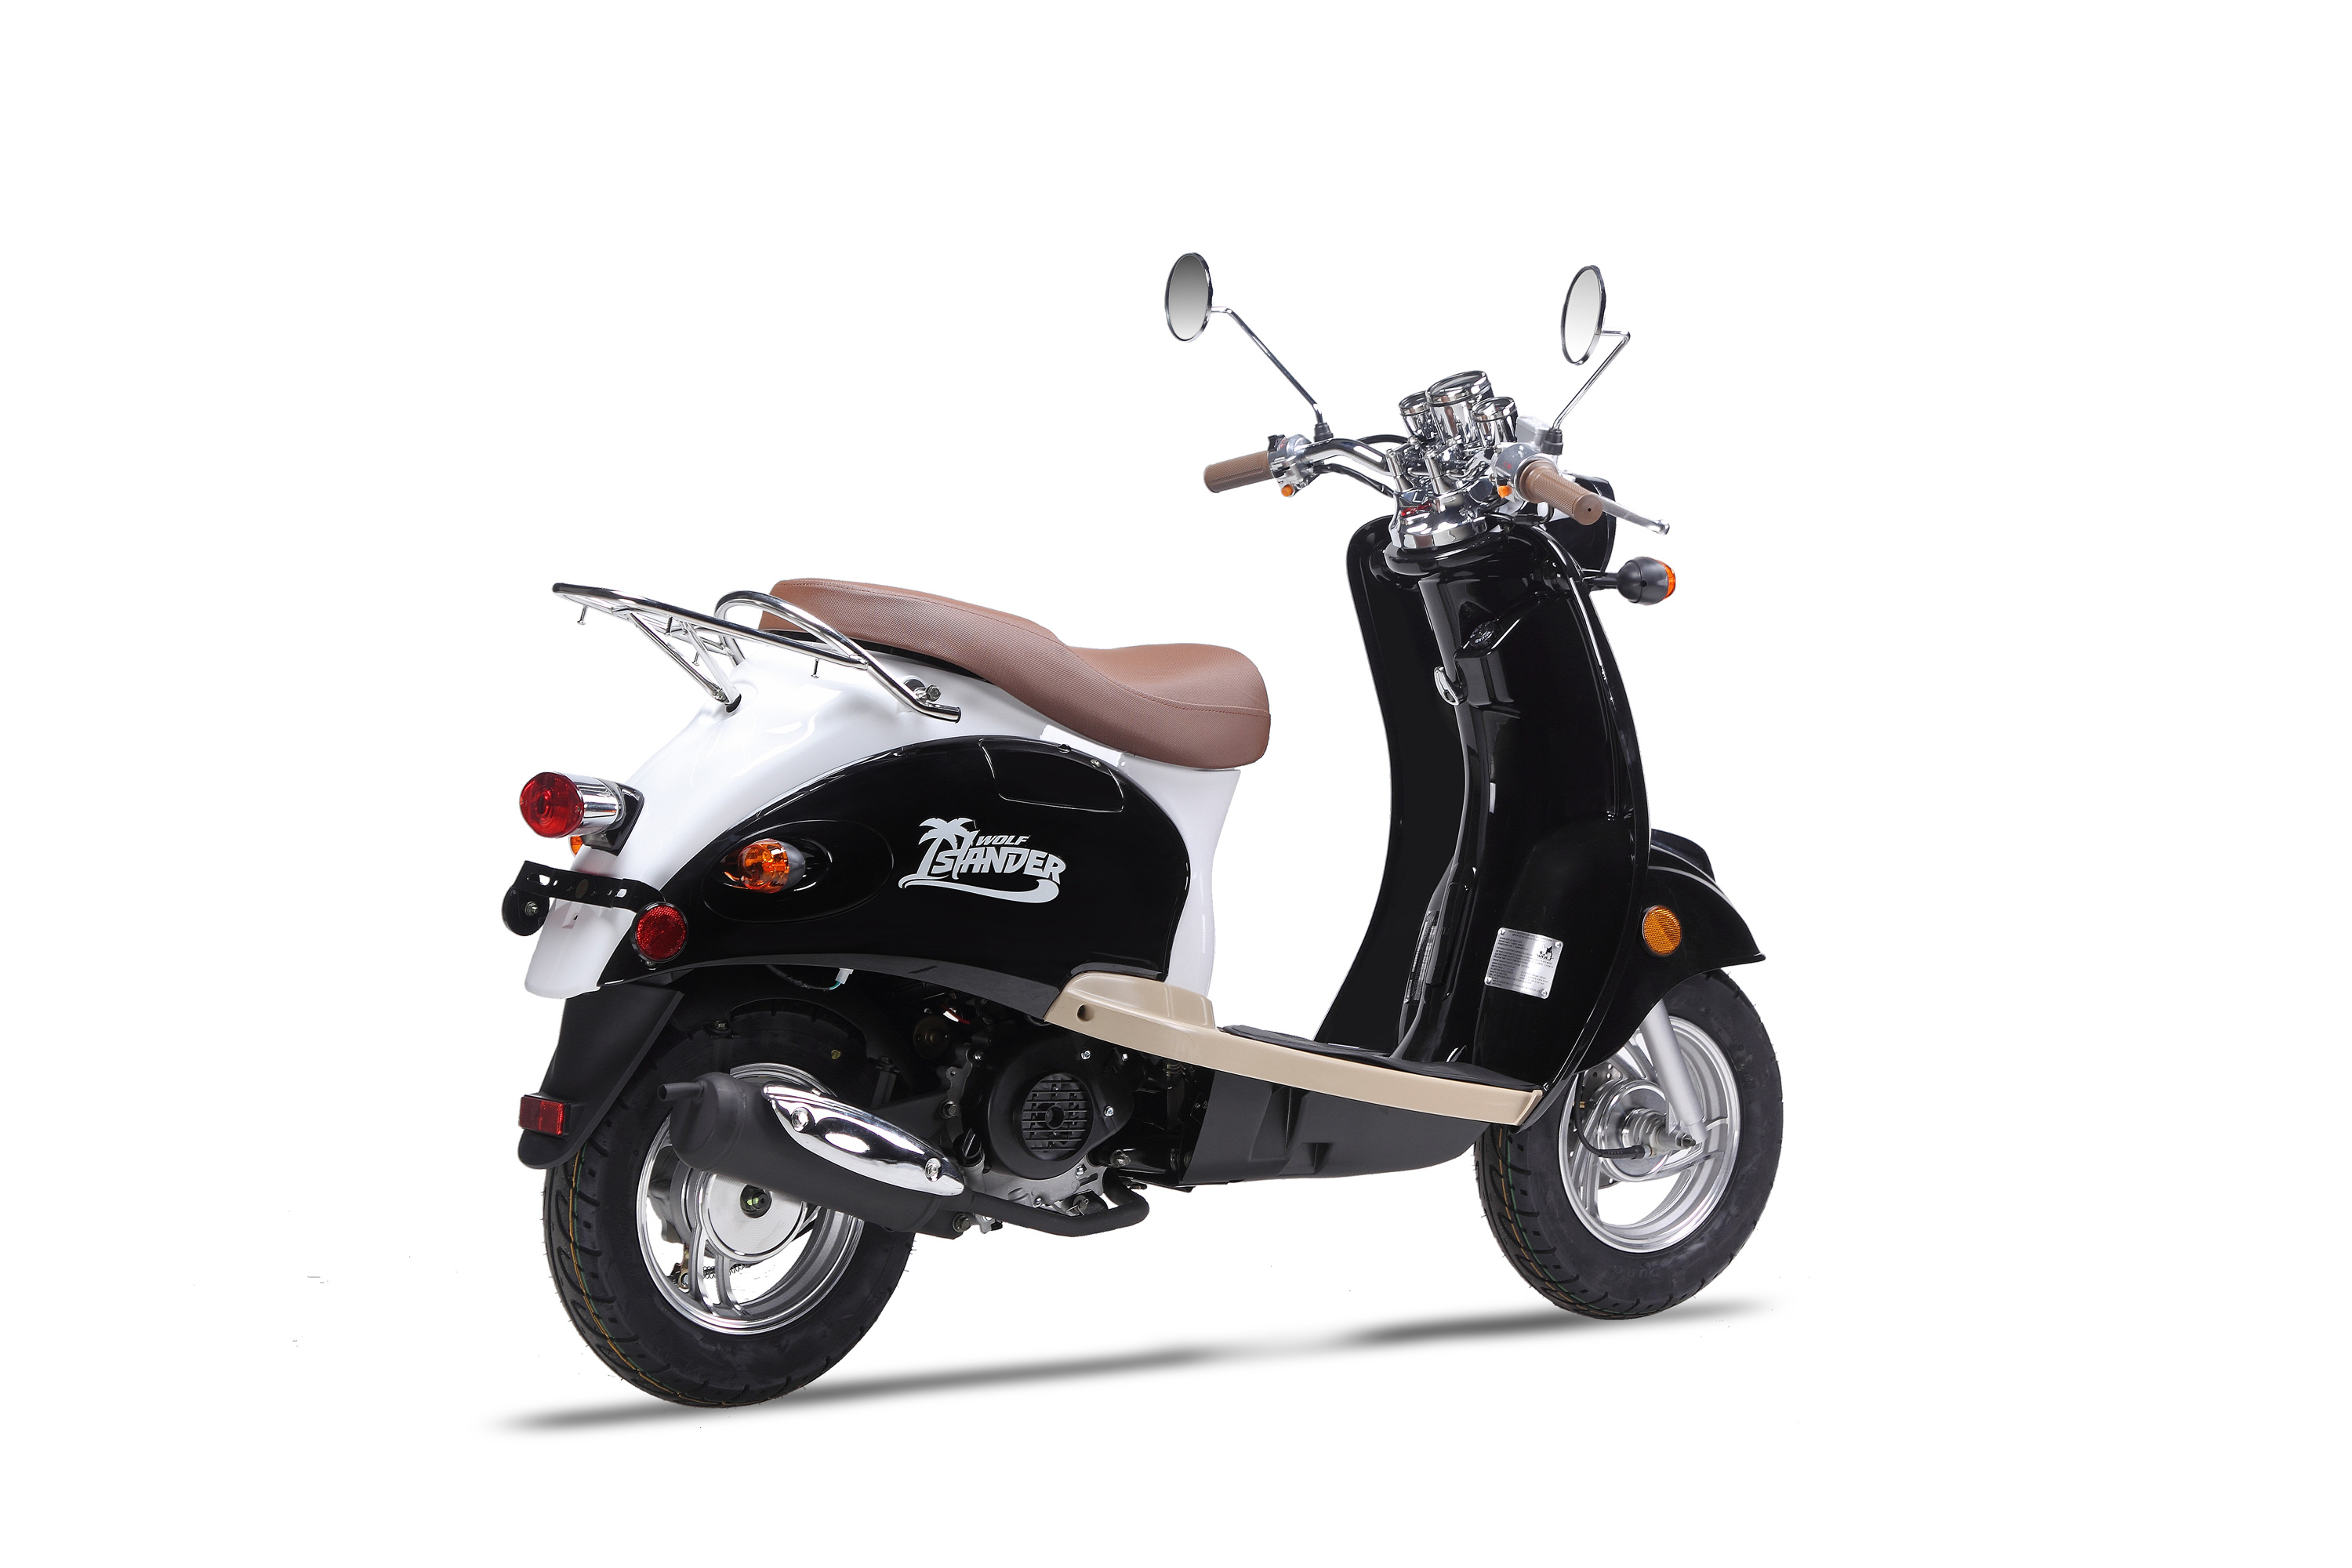 New Scooters - Seacoast Scooters